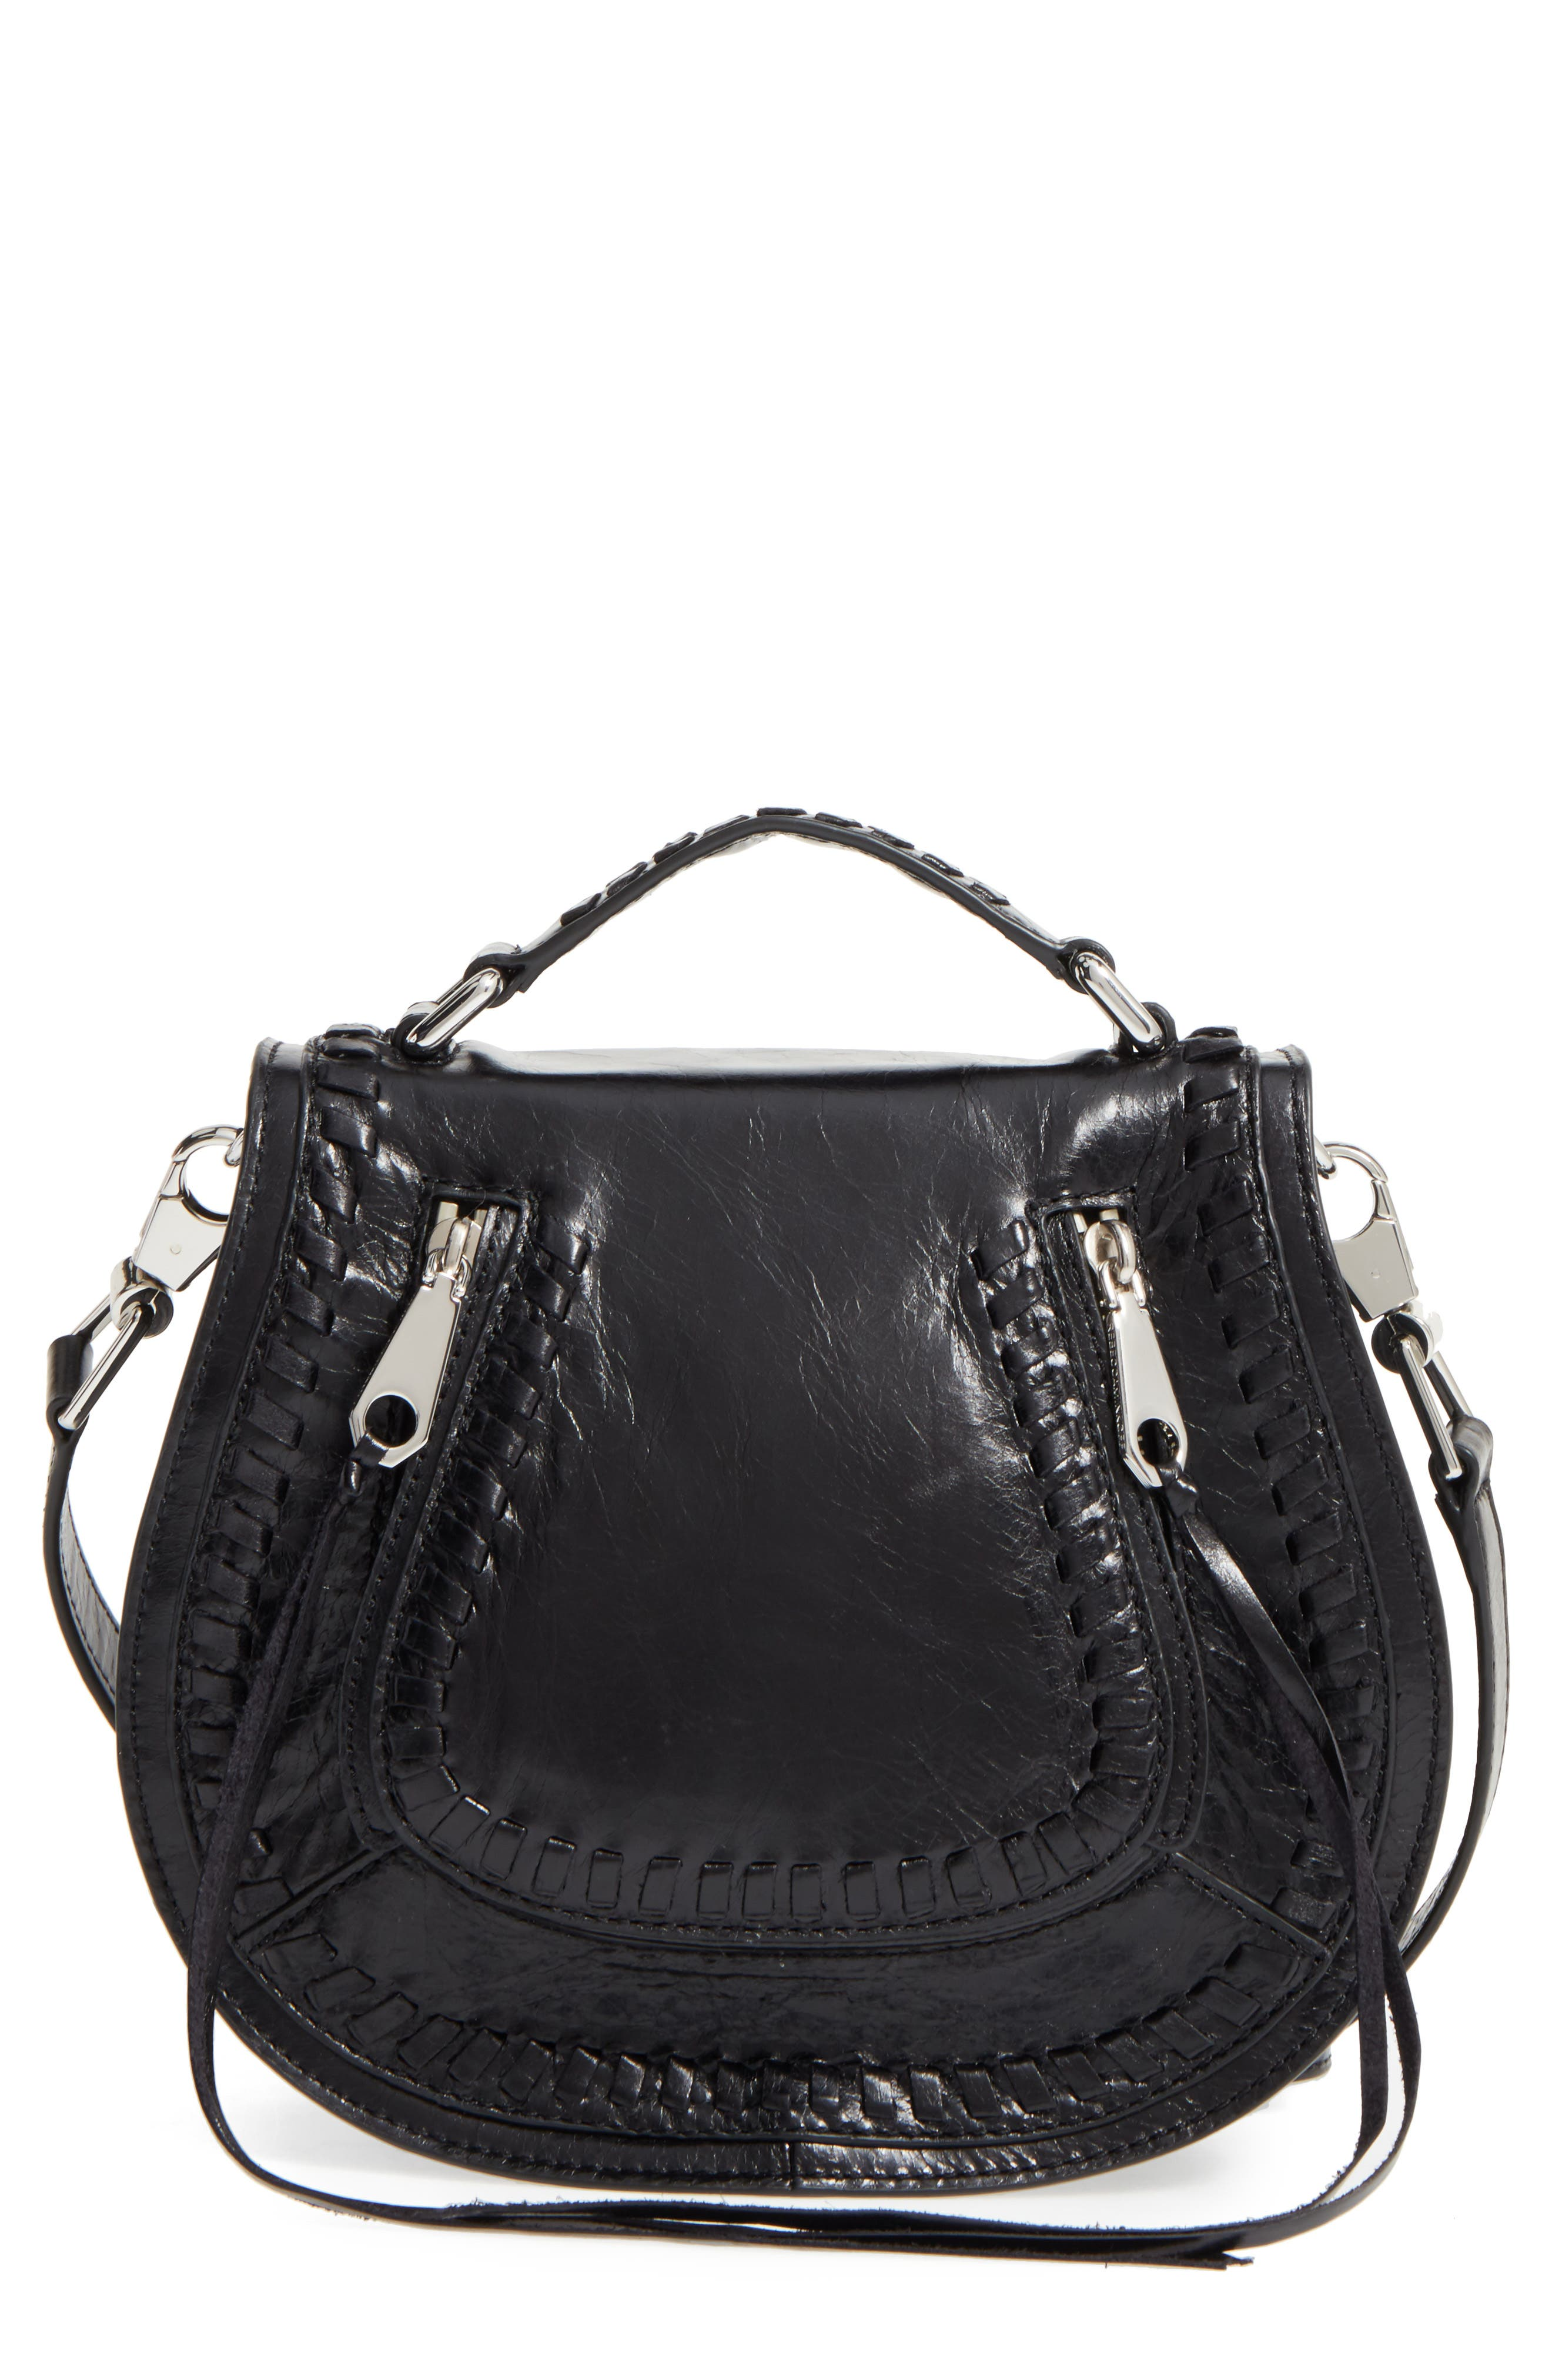 REBECCA MINKOFF Small Vanity Leather Saddle Bag, Main, color, 001